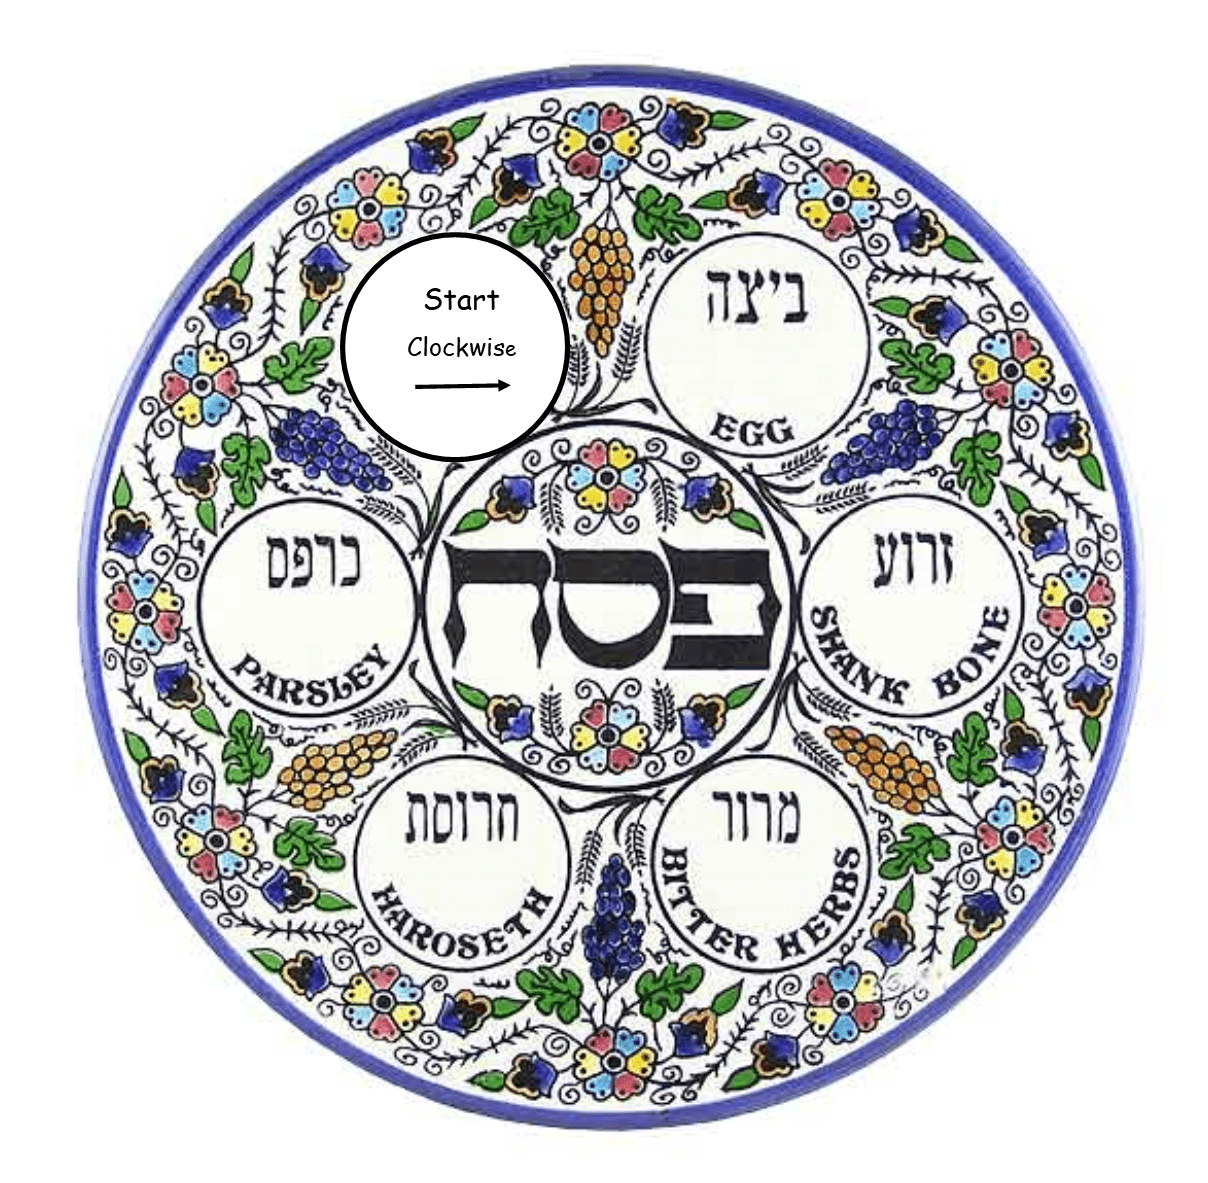 Seder Plate Image for CK 23Mar20-min